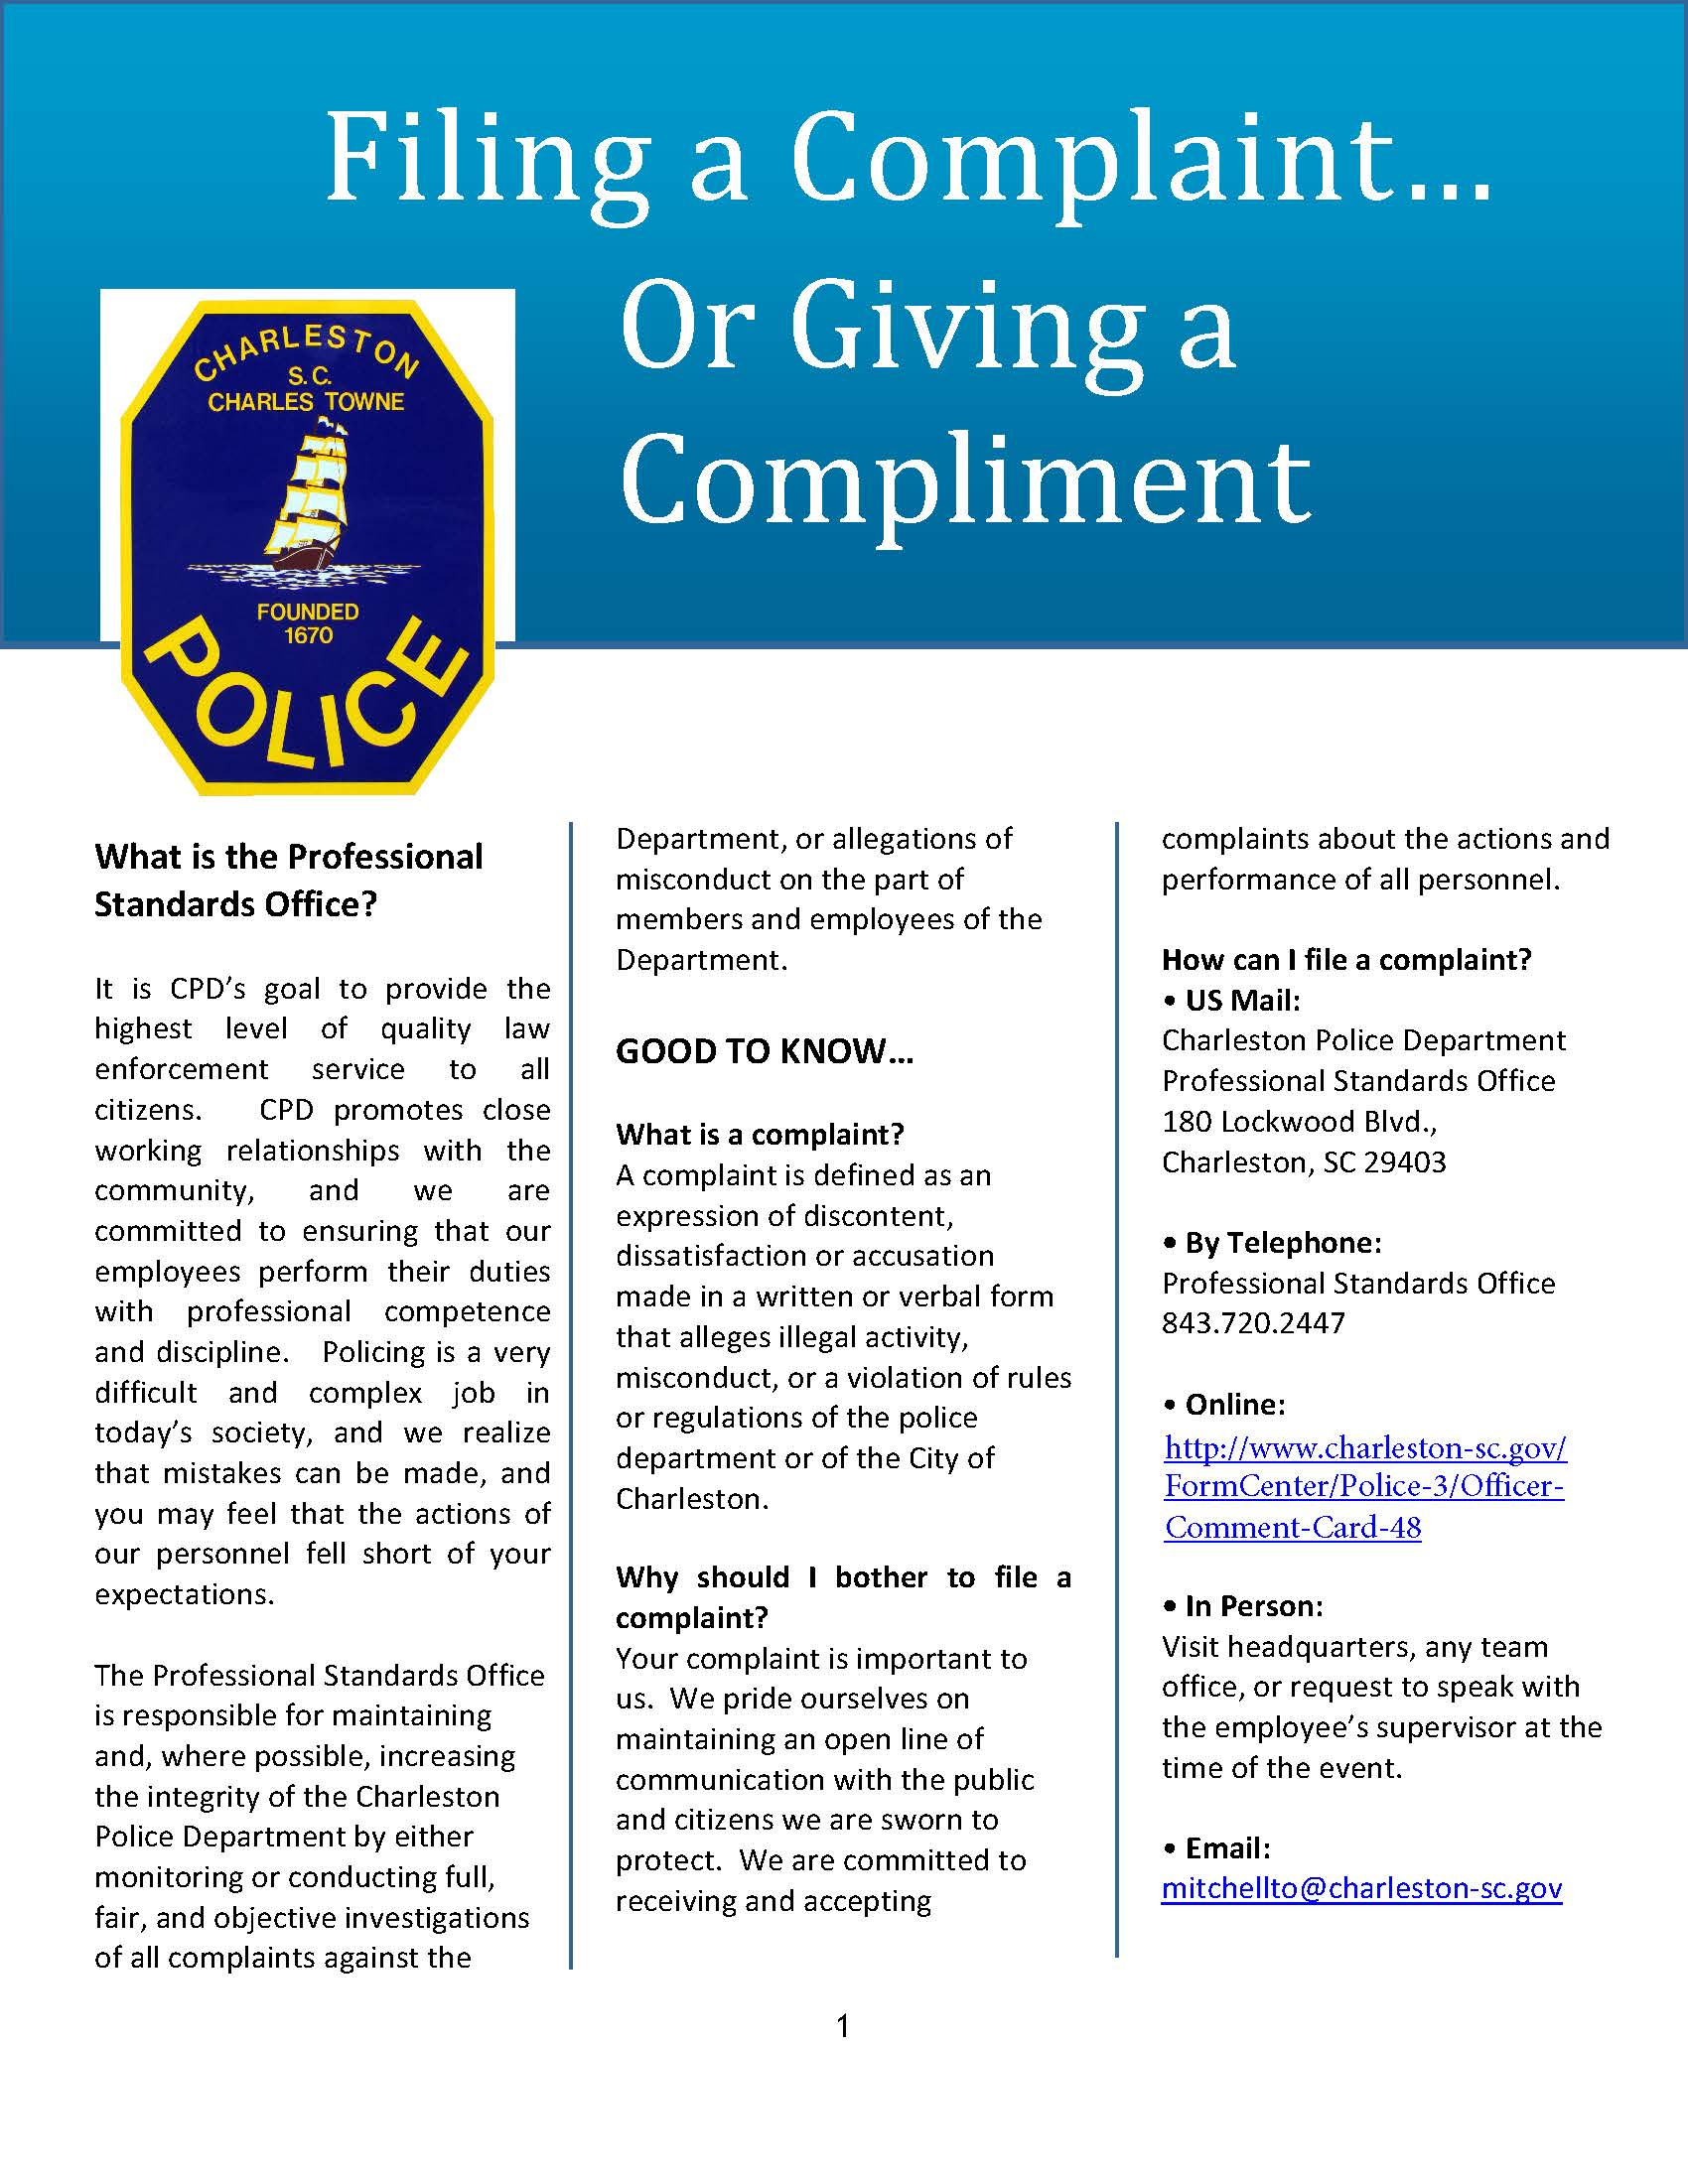 Complaint or Compliment Newsletter_Page_1.jpg